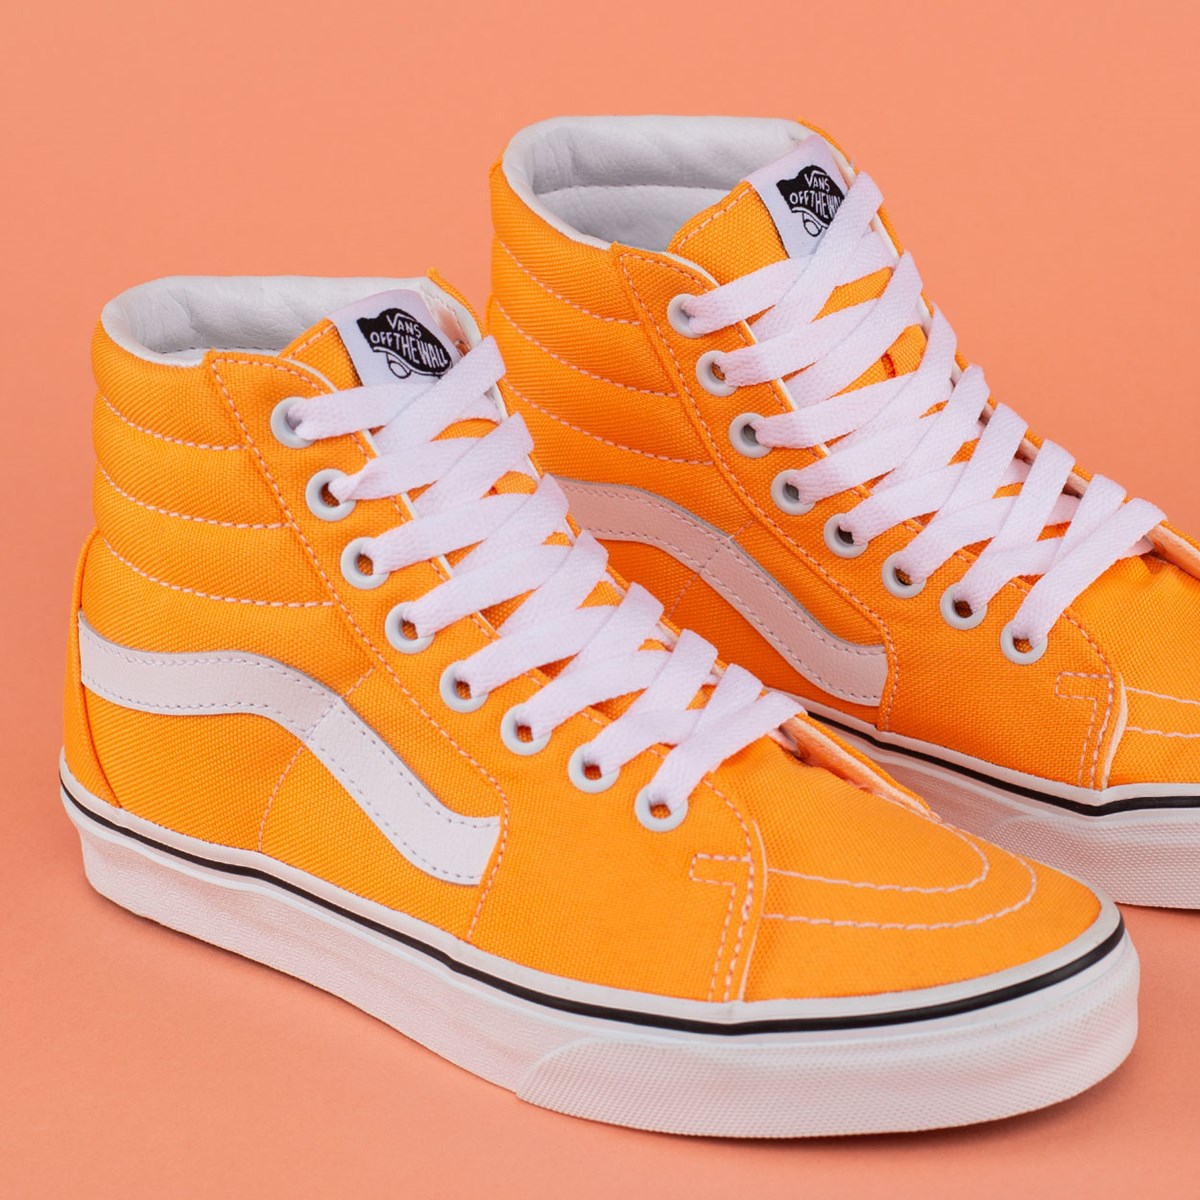 Tênis Vans Sk8 Hi Neon Blazing Orange True White VN0A4U3CWT4